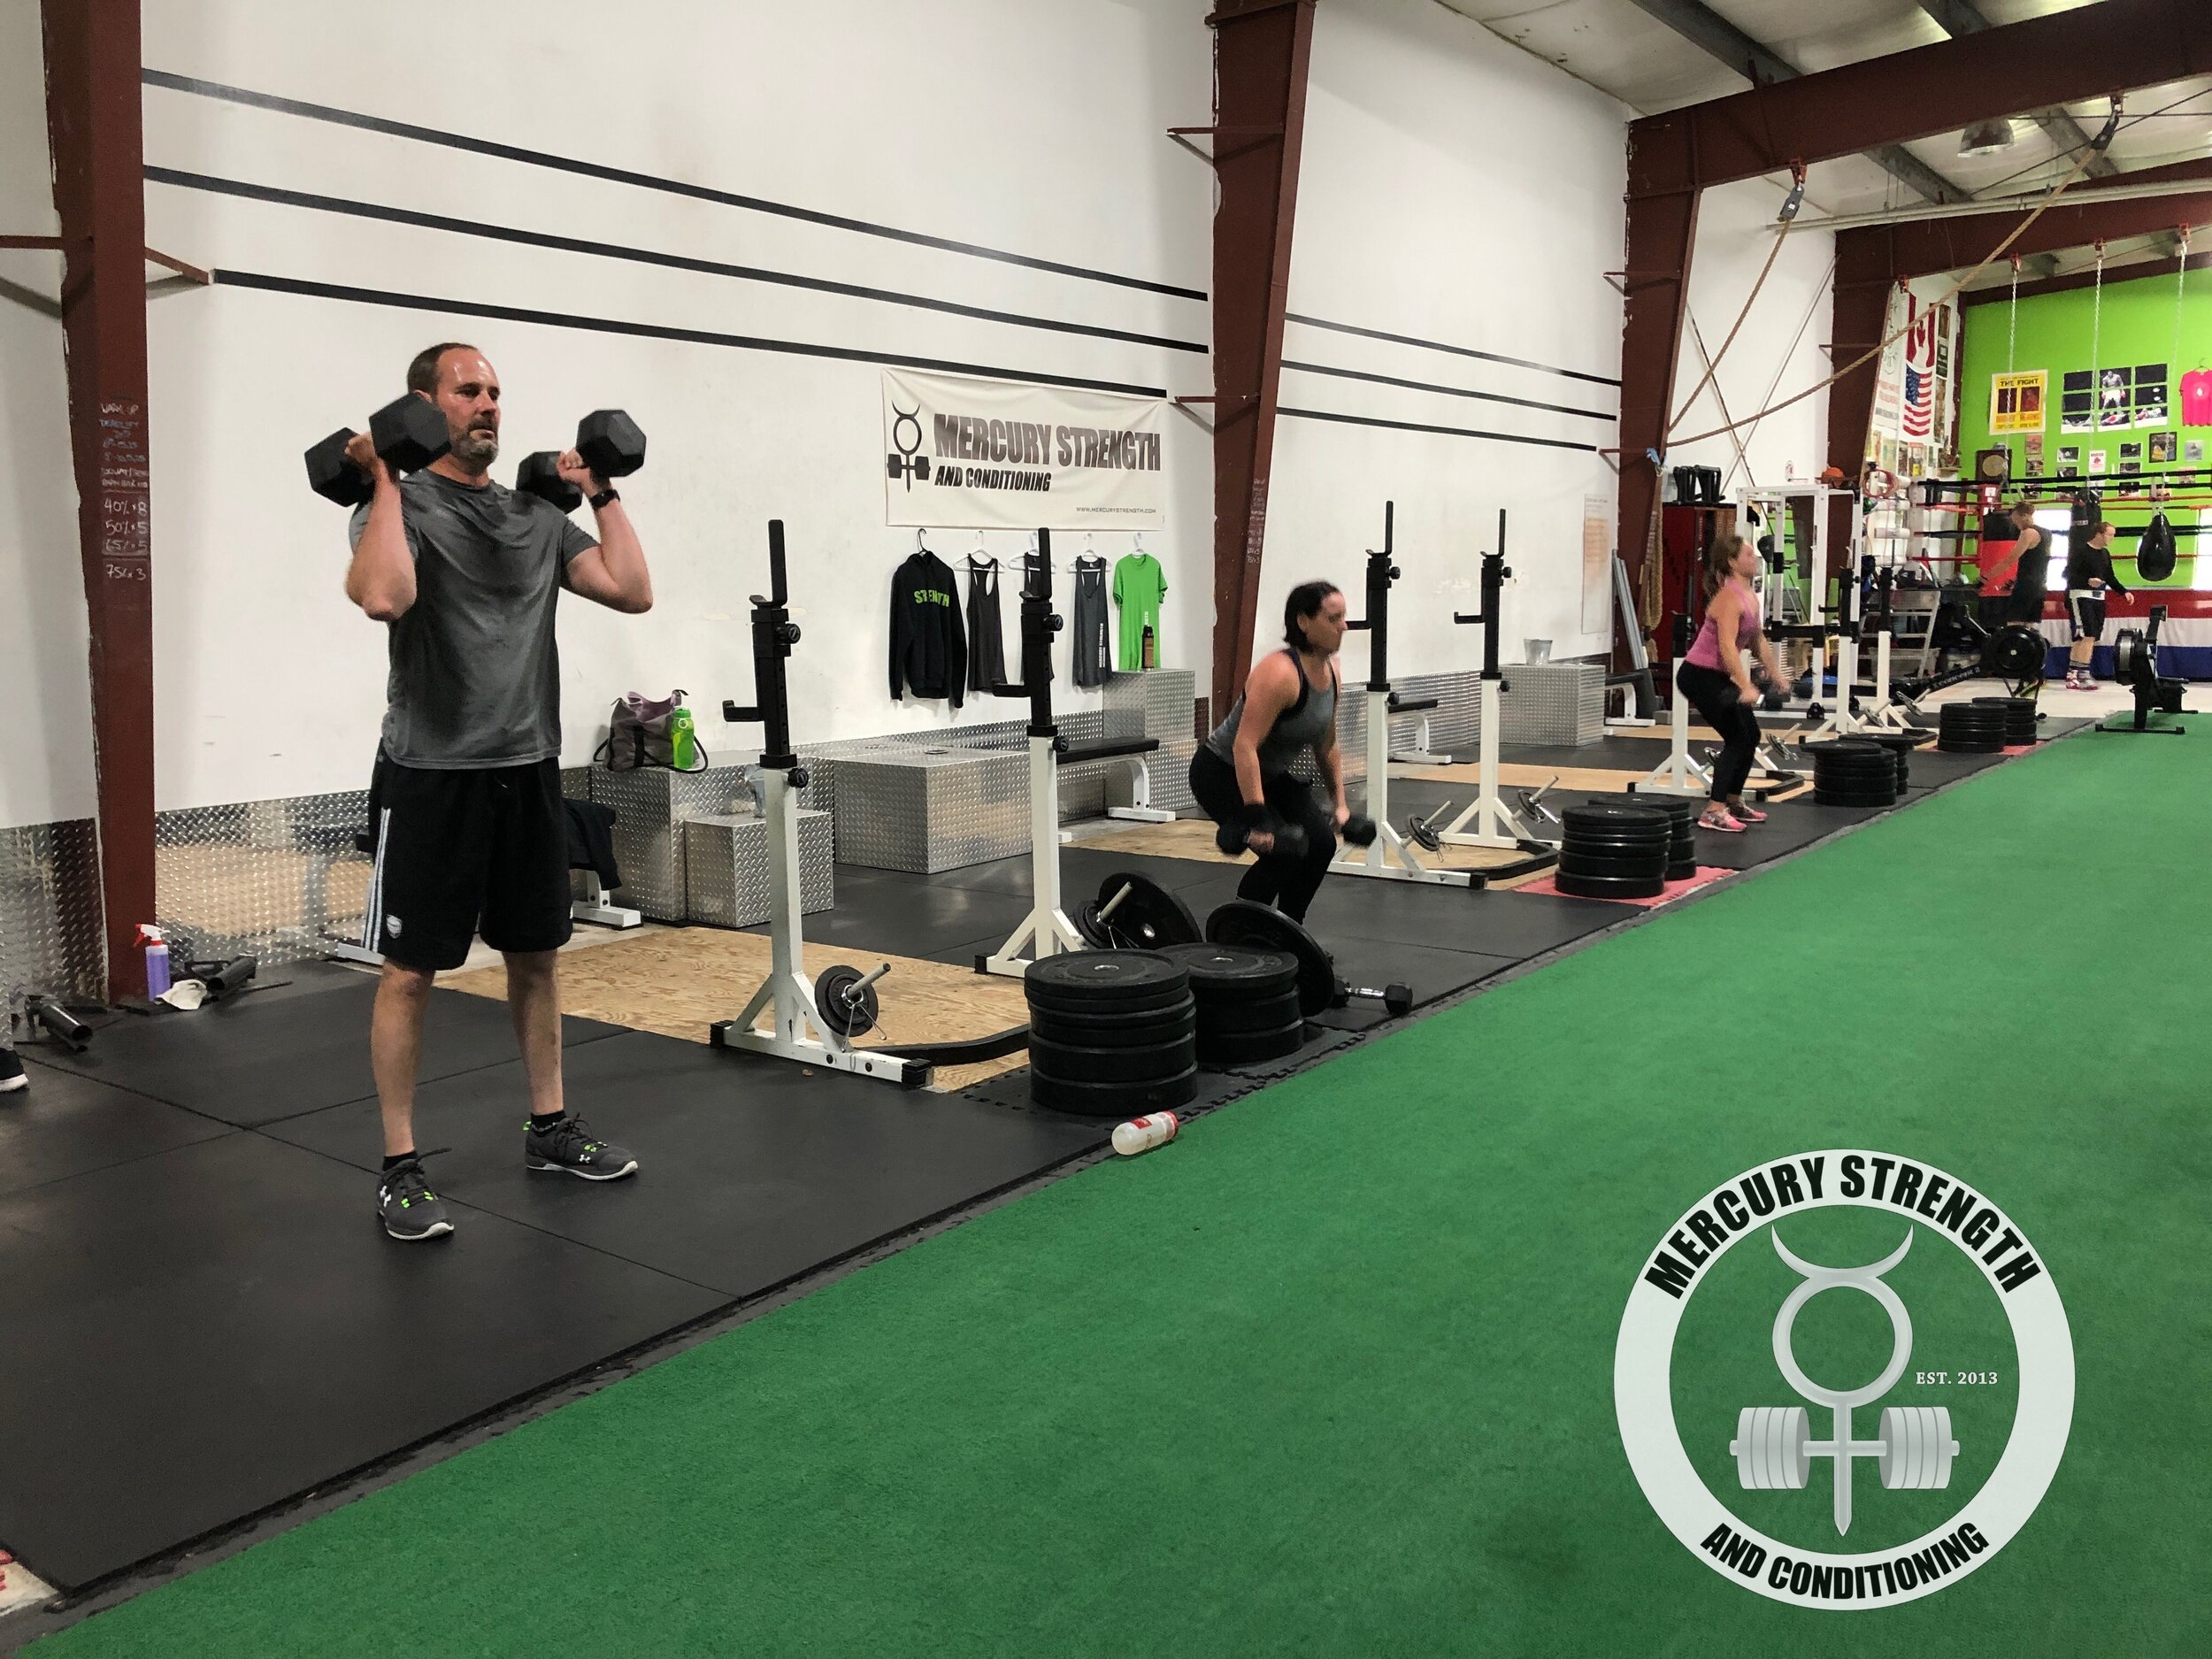 Gym-powerlifting-Olympic lifting-fitness-personal training-training-bootcamp-crossfit-kingston-gym-kingston gym-physique-body building-nutrition-kids-mercury-strength-conditioning-athlete-ontario powerlifting association-OPA-Canadian powerlifting federation-CPF-DB Power Clean.JPG